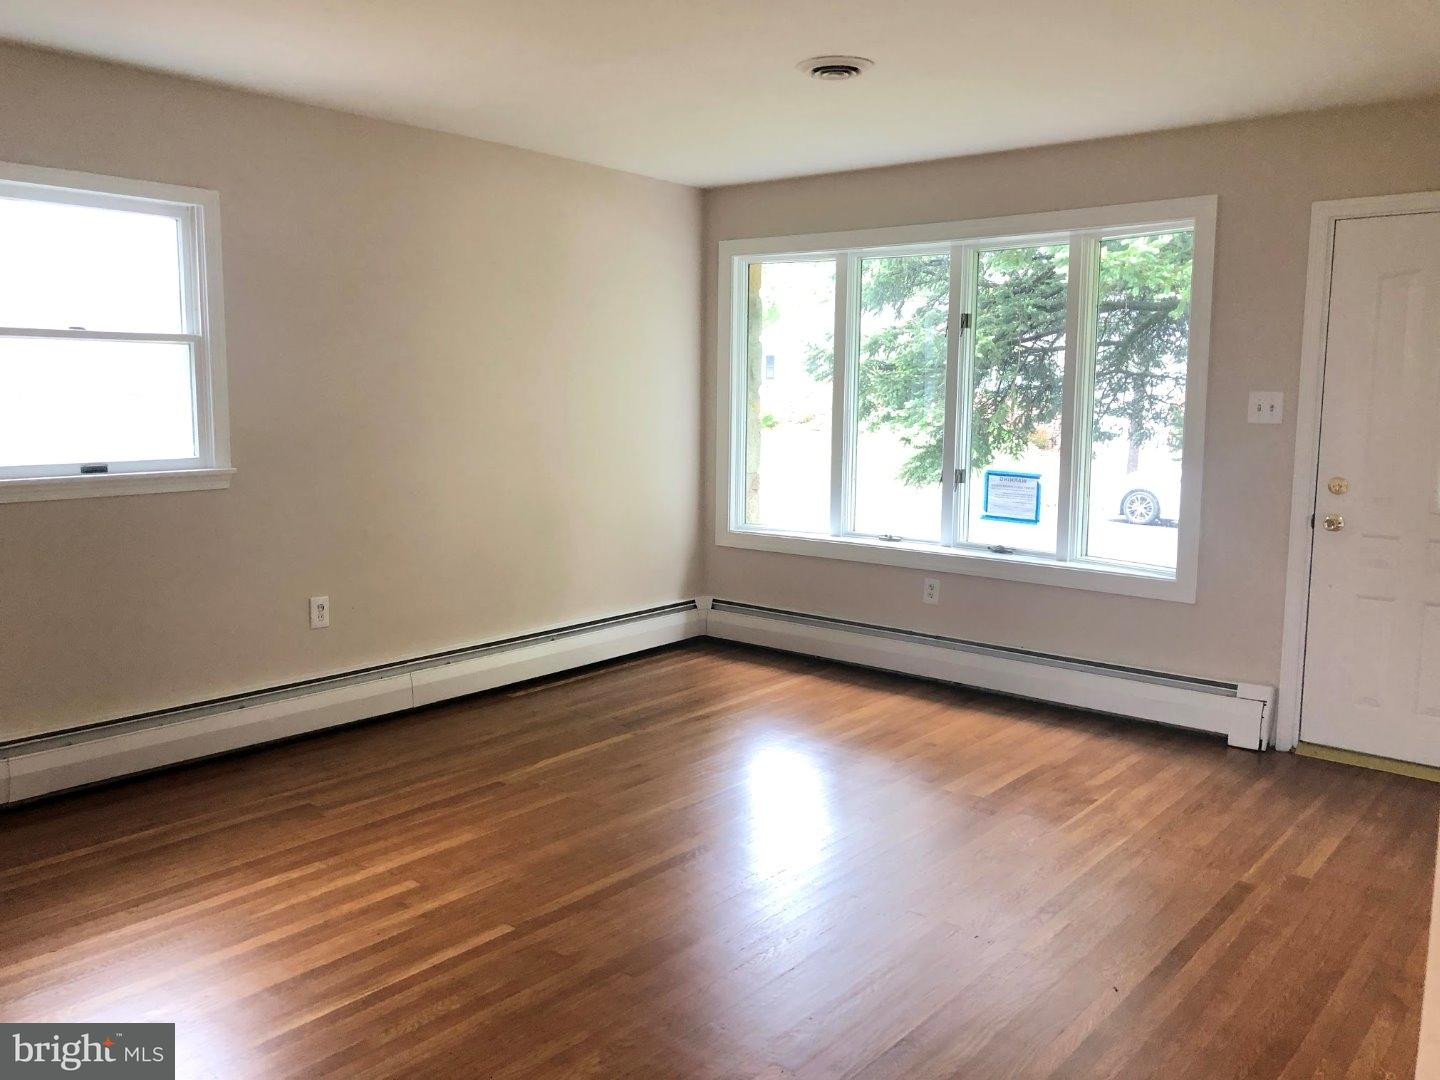 hardwood floor refinishing cost boston of 501 1st avenue bellmawr 08031 mls 1001529642 re max of reading intended for 501 1st avenue bellmawr nj 08031